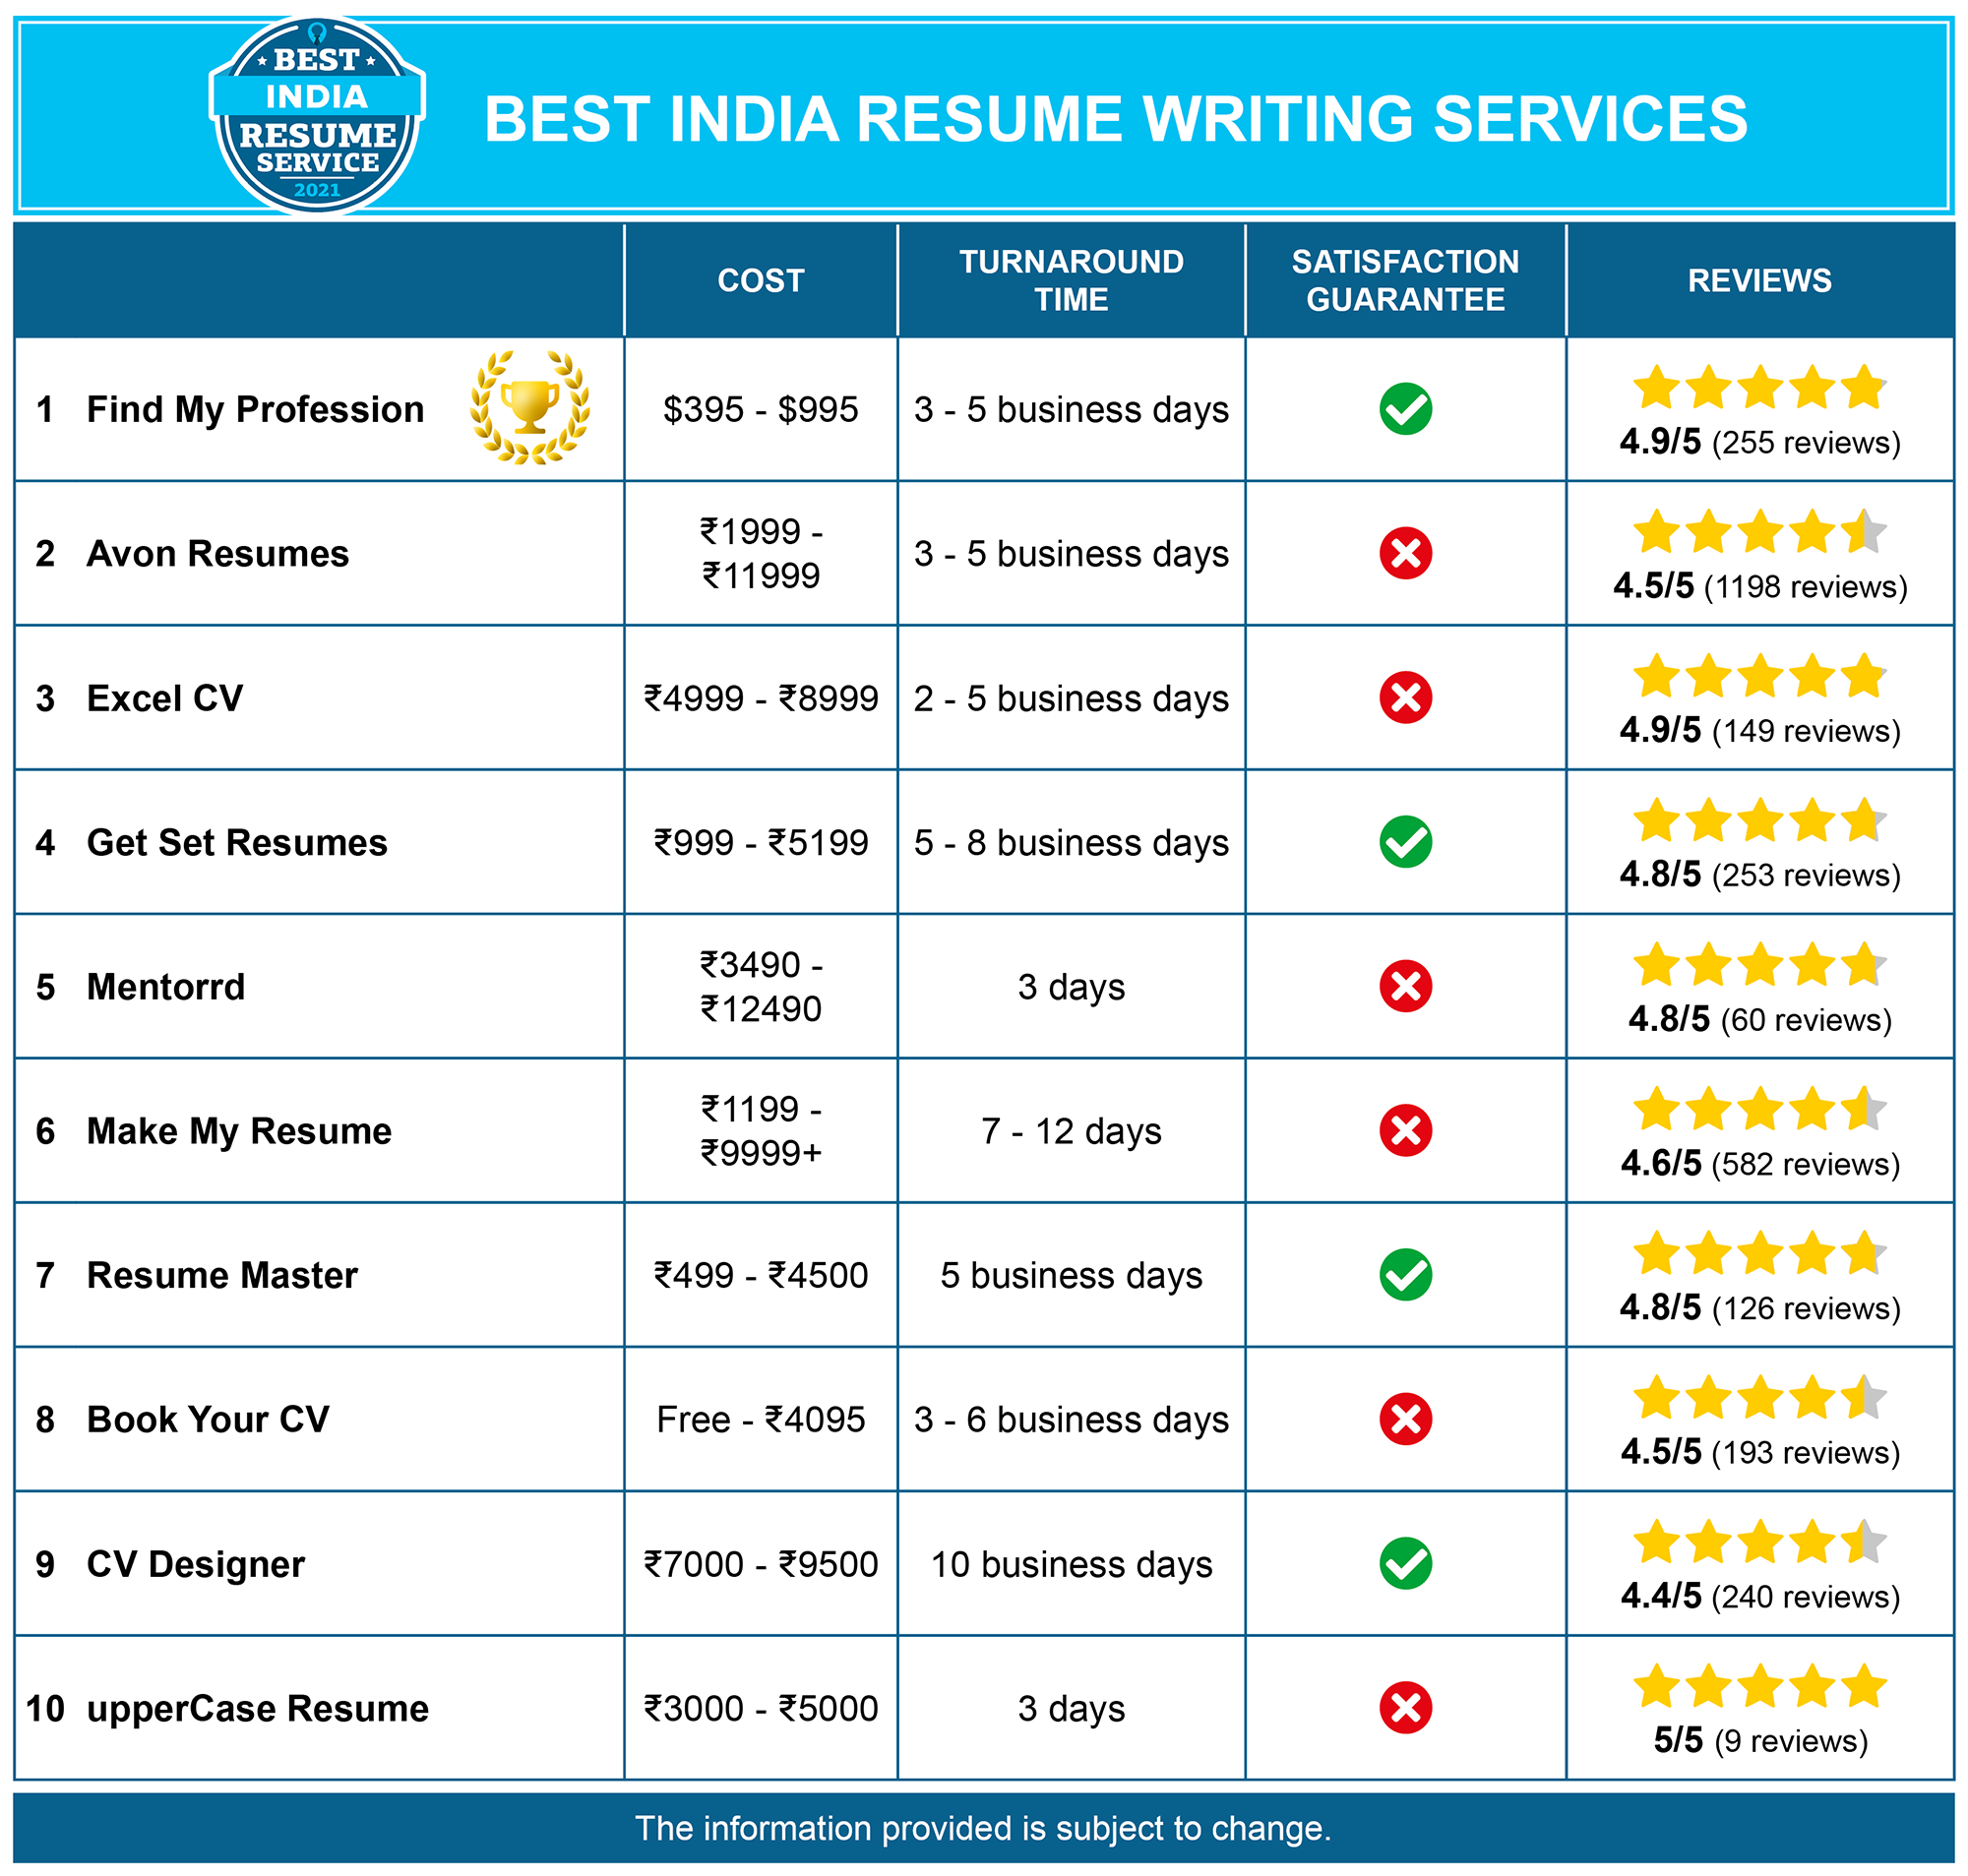 Best India Resume Writing Services